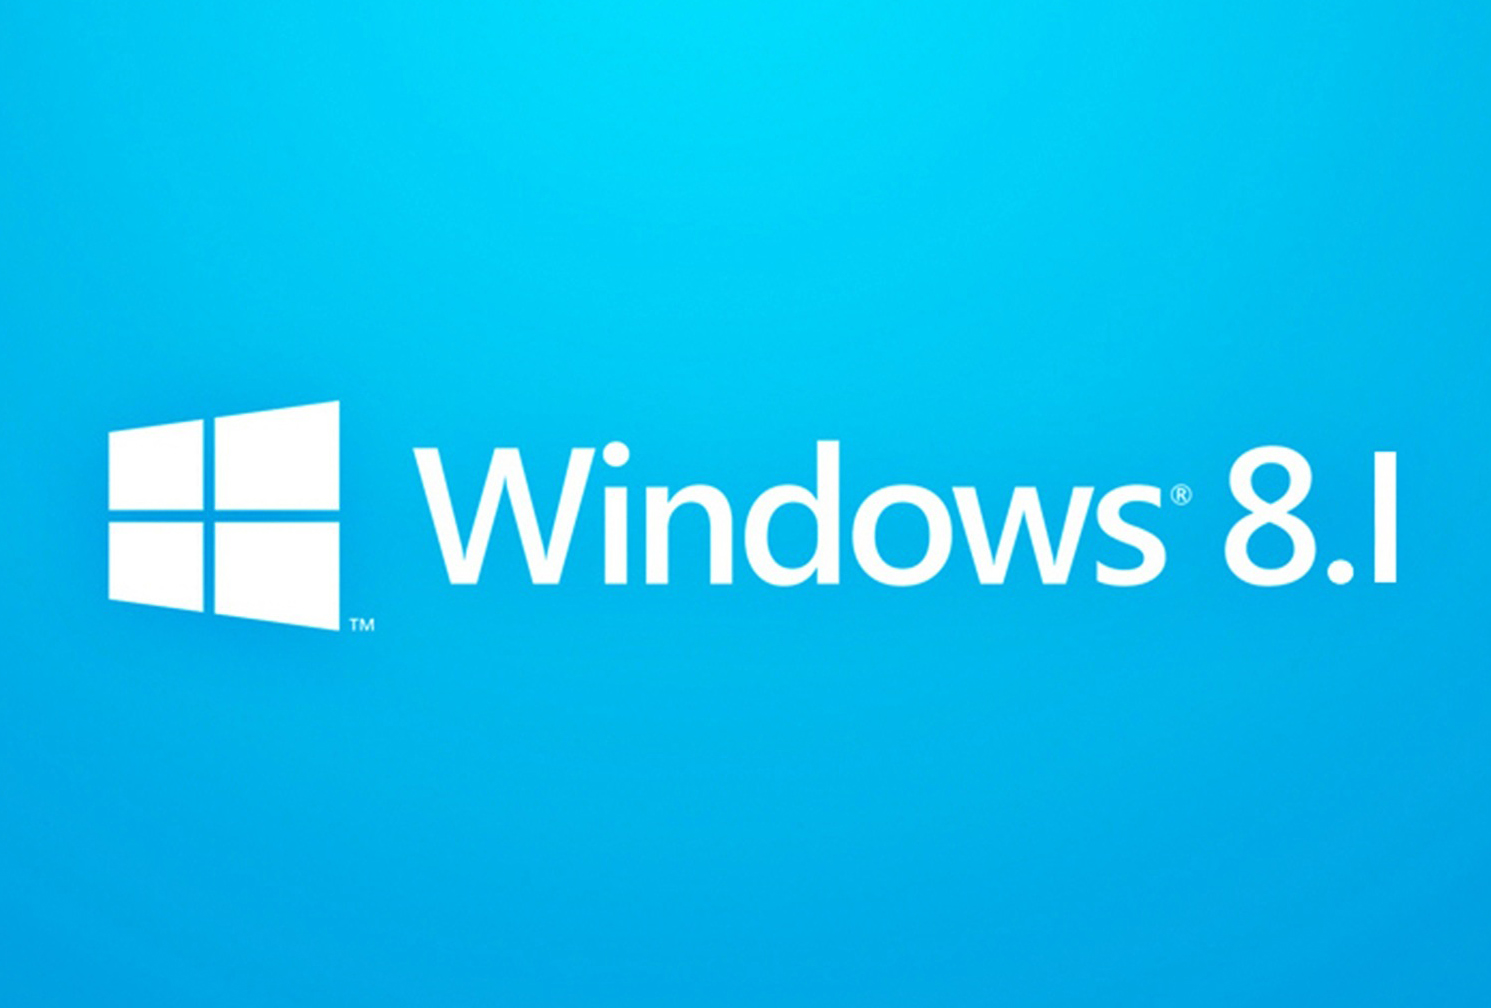 http://dl.247-365.ir/amozesh/windows/startup_windows_8.1/Startup_Windows_8.1_01.jpg